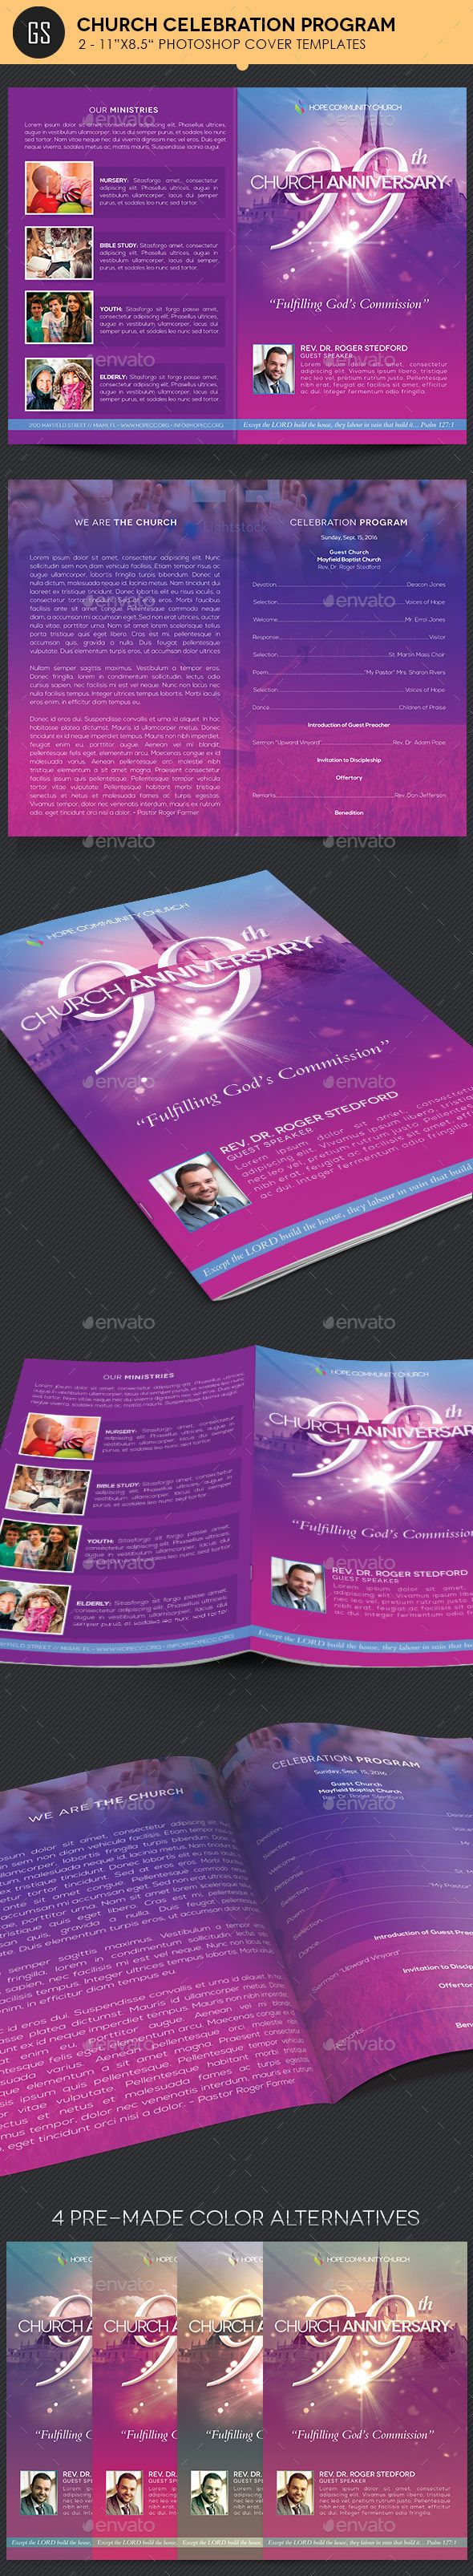 Anniversary Celebration Church Anniversary Program Template